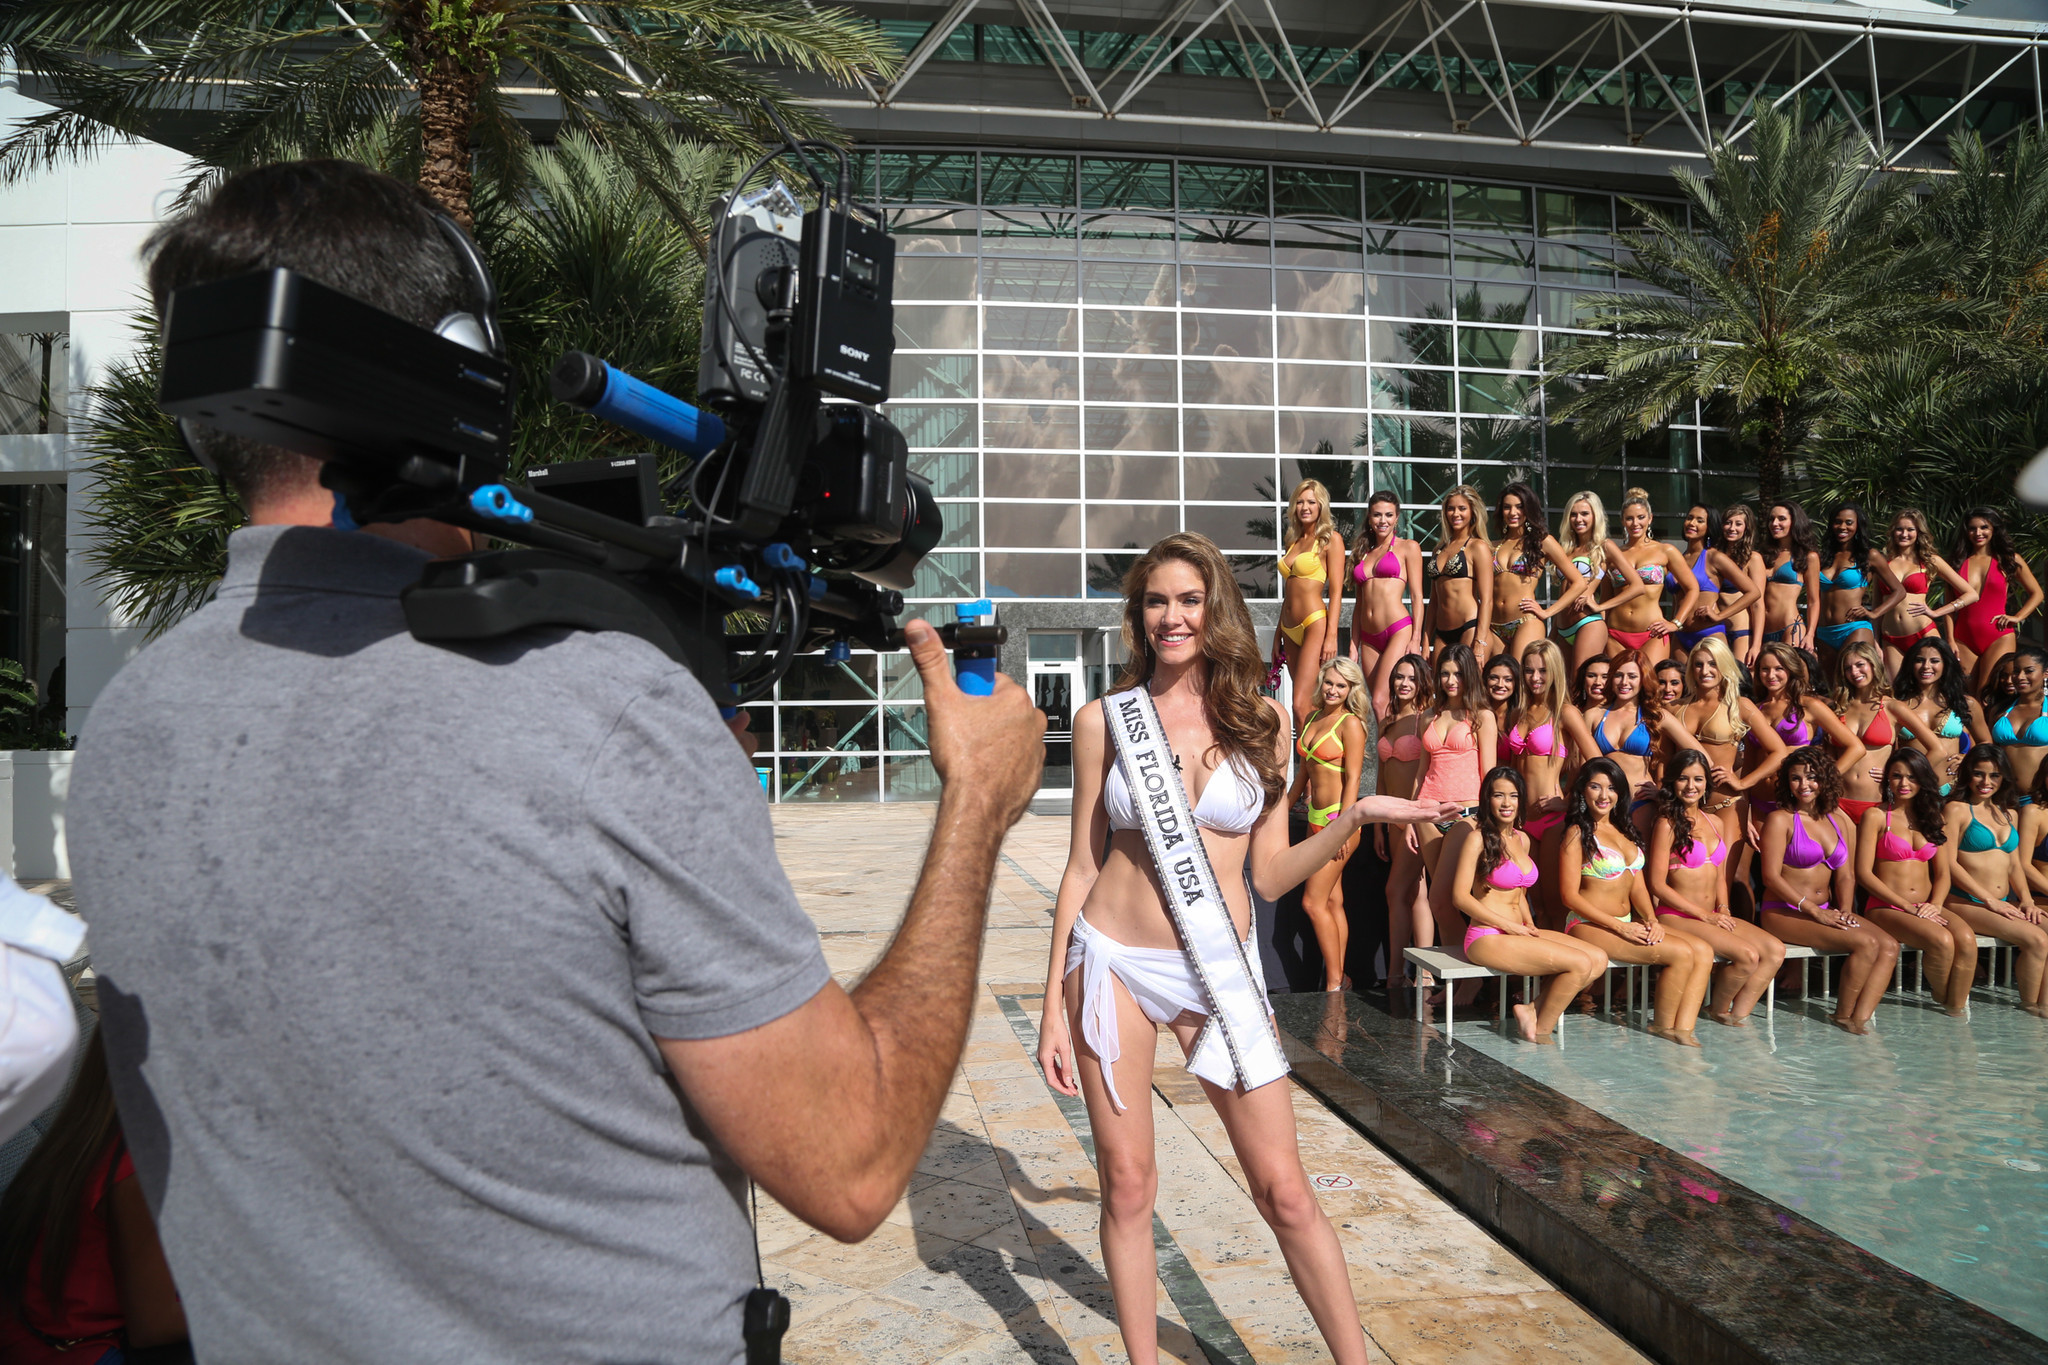 Miss Florida USA Pageant - Miss Florida USA